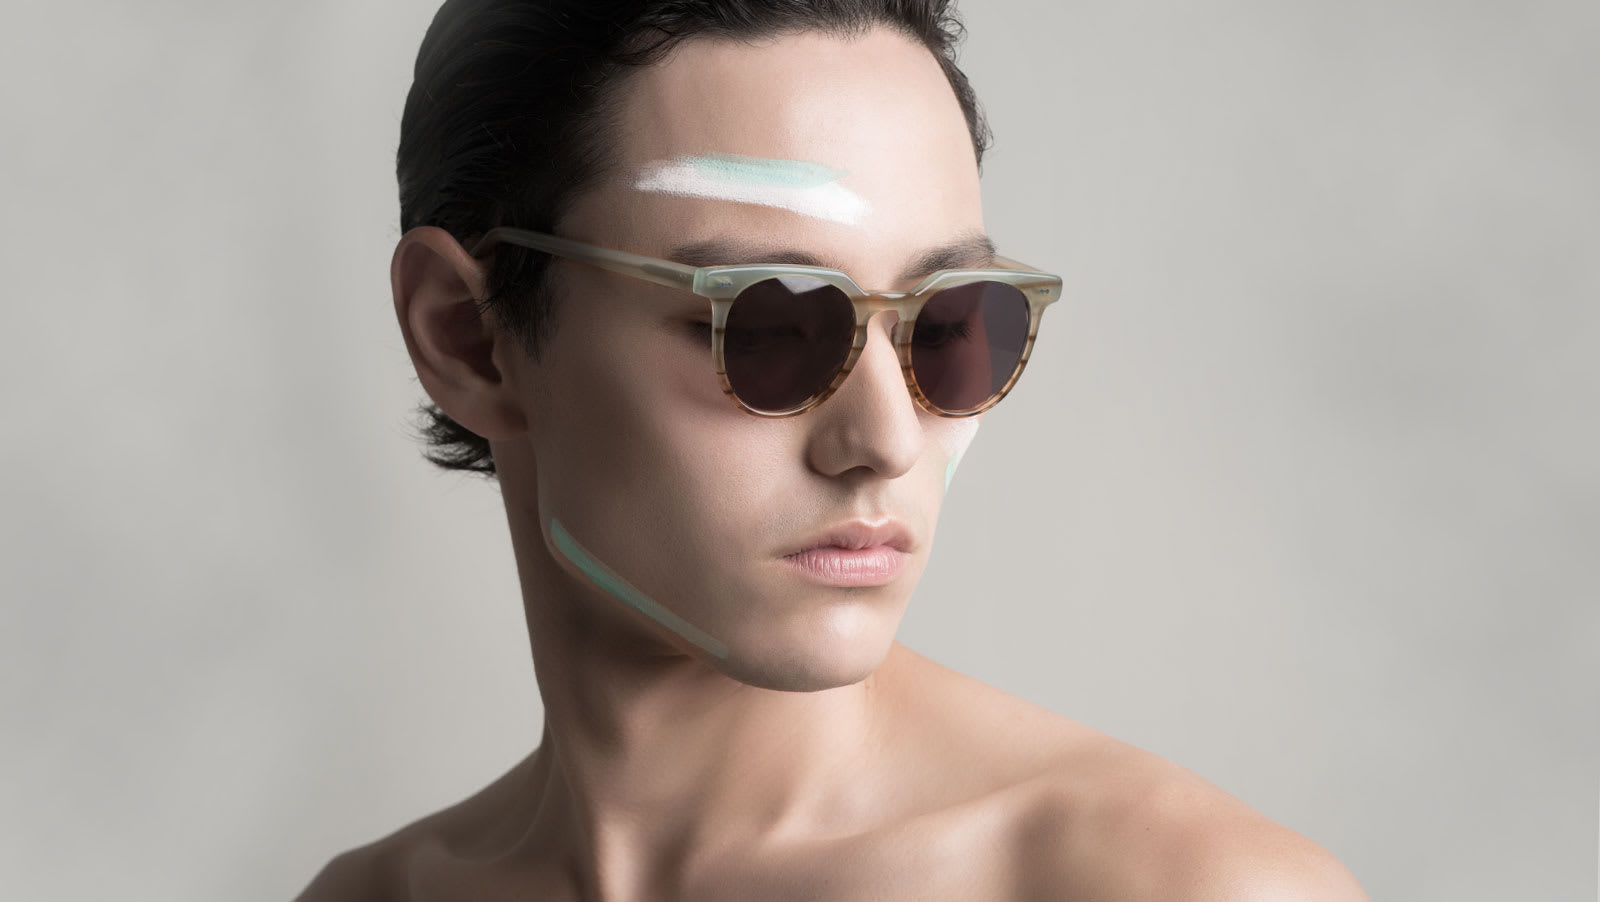 paint on model wearing clear eyeglasses